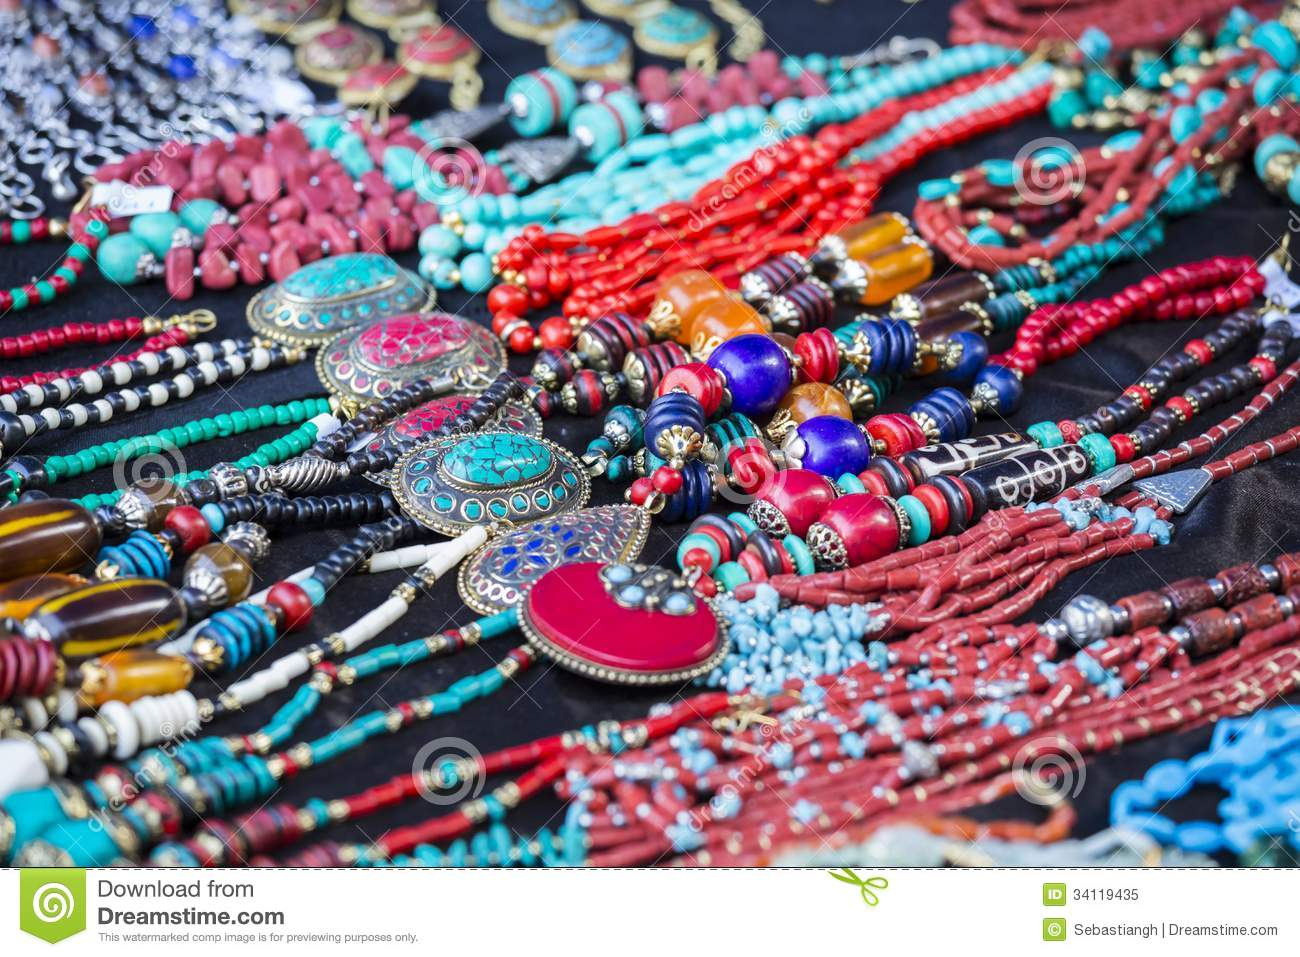 Colorful collars, bracelets, beads, accessories and souvenirs